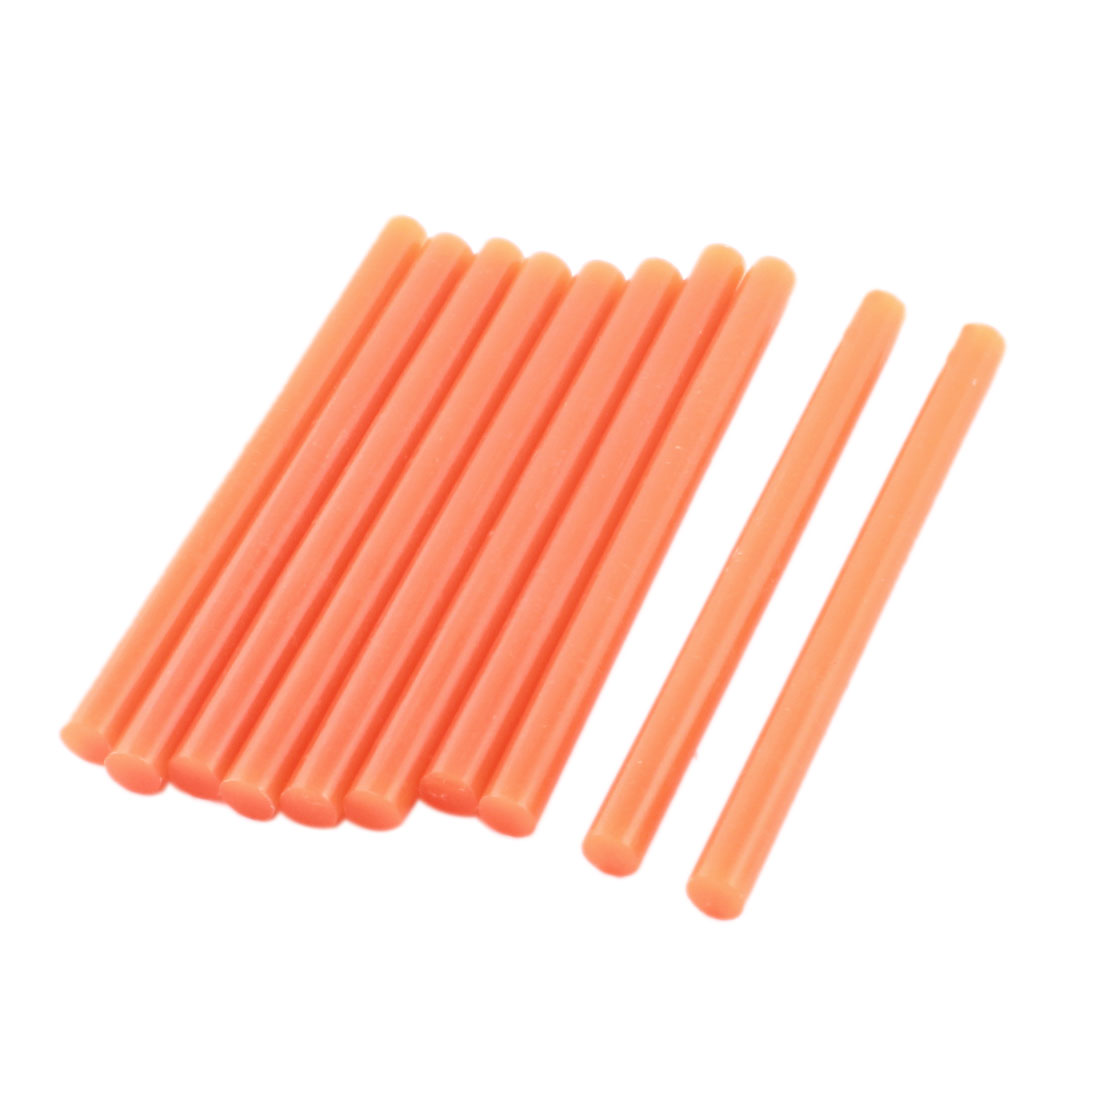 10 Pcs Orange Hot Melt Glue Gun Adhesive Sticks 7mm x 100mm for Crafting Models